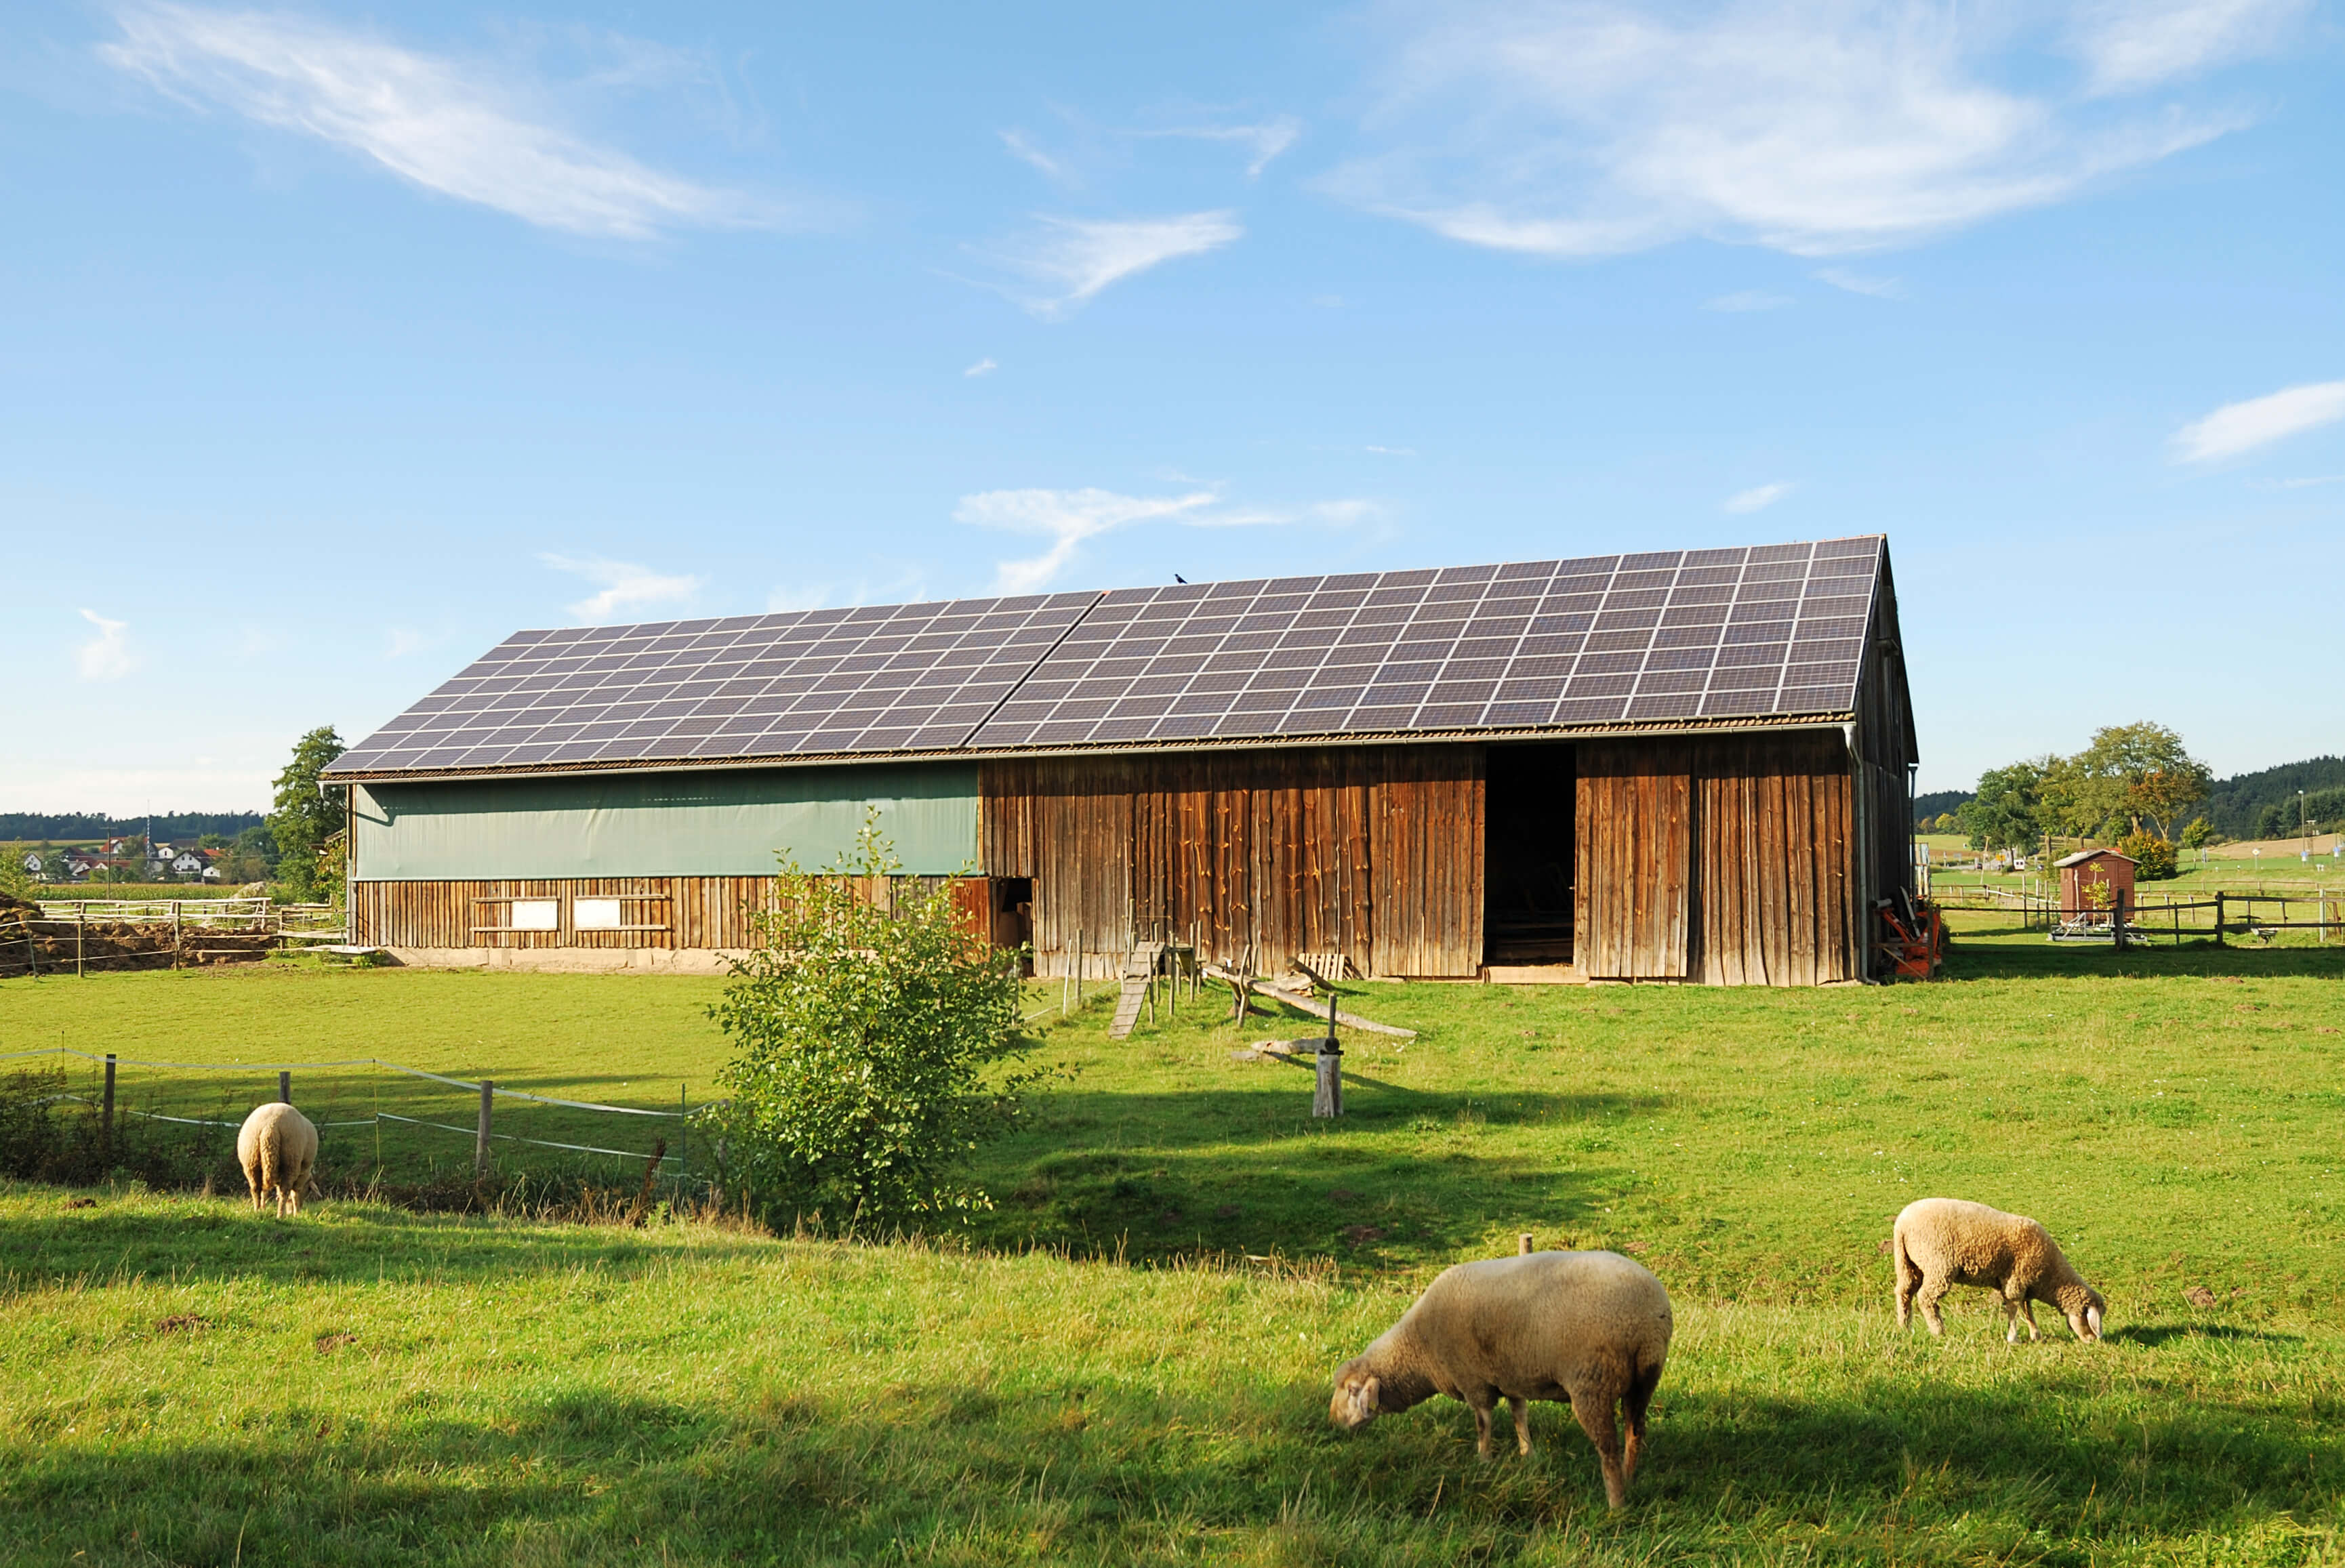 5 ways to keep the energy bill down over summer